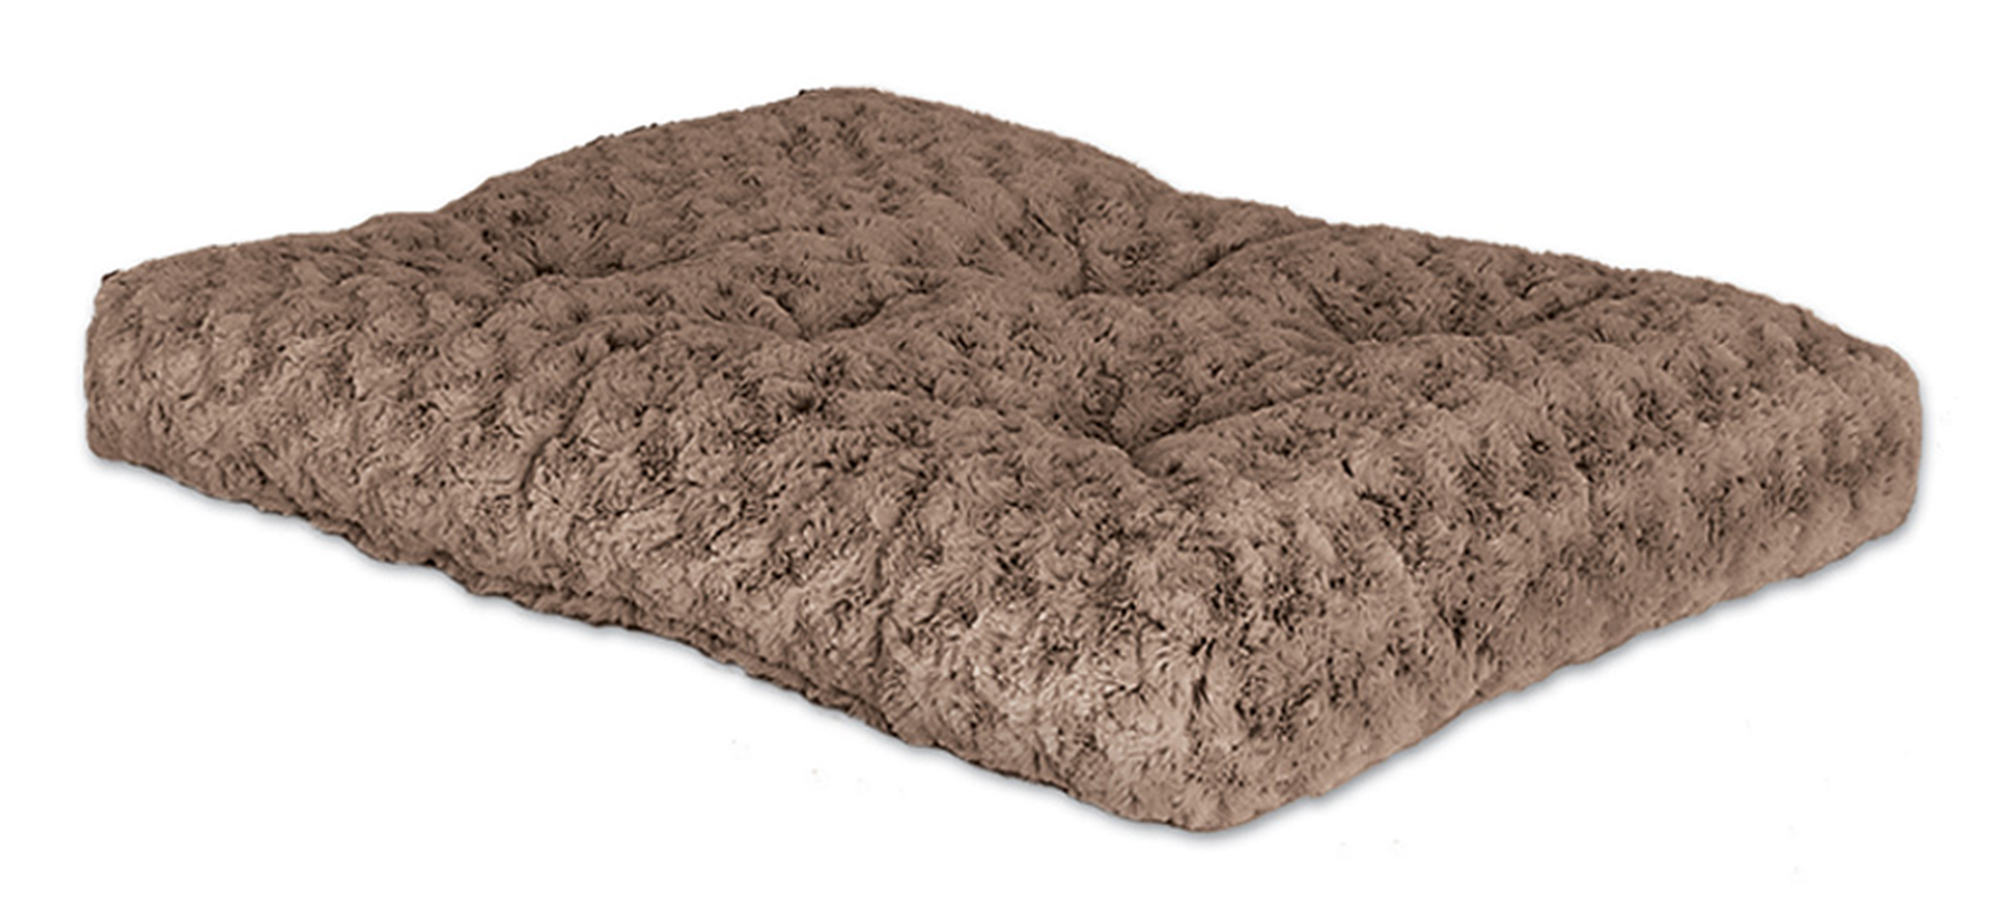 bed indestructible petco petcostore dog bedding on en category best center and small sale beds shop large